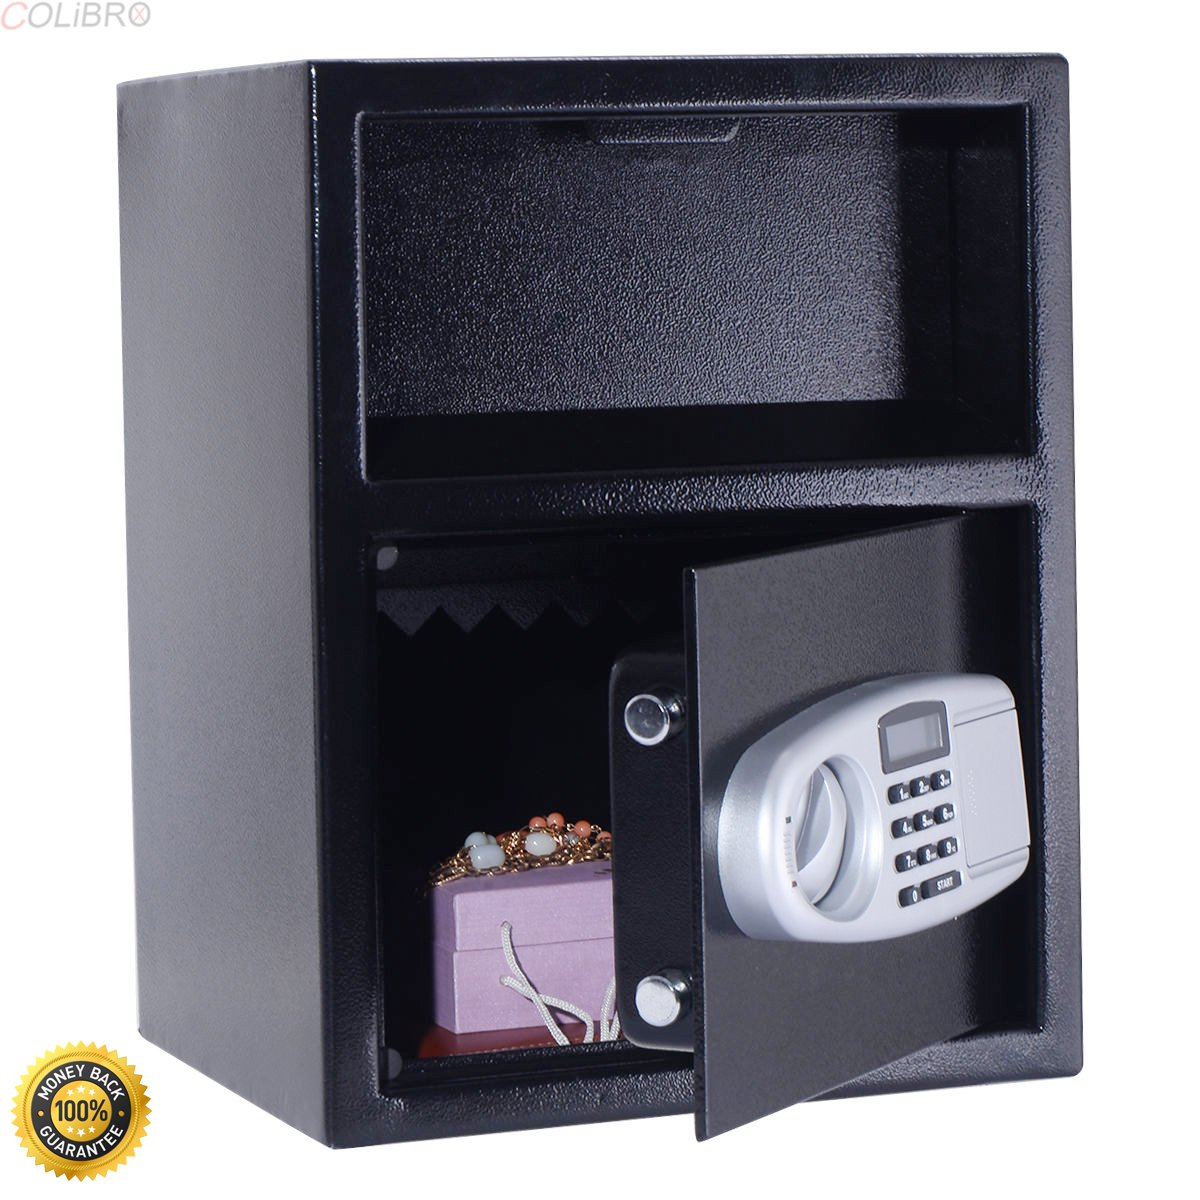 COLIBROX--Digital Safe Box Depository Drop Deposit Front Load Cash Vault Lock Home Jewelry,best gun safe,best gun safe 2017,compact gun safe,cheap gun safe,replacement lock for gun cabinet